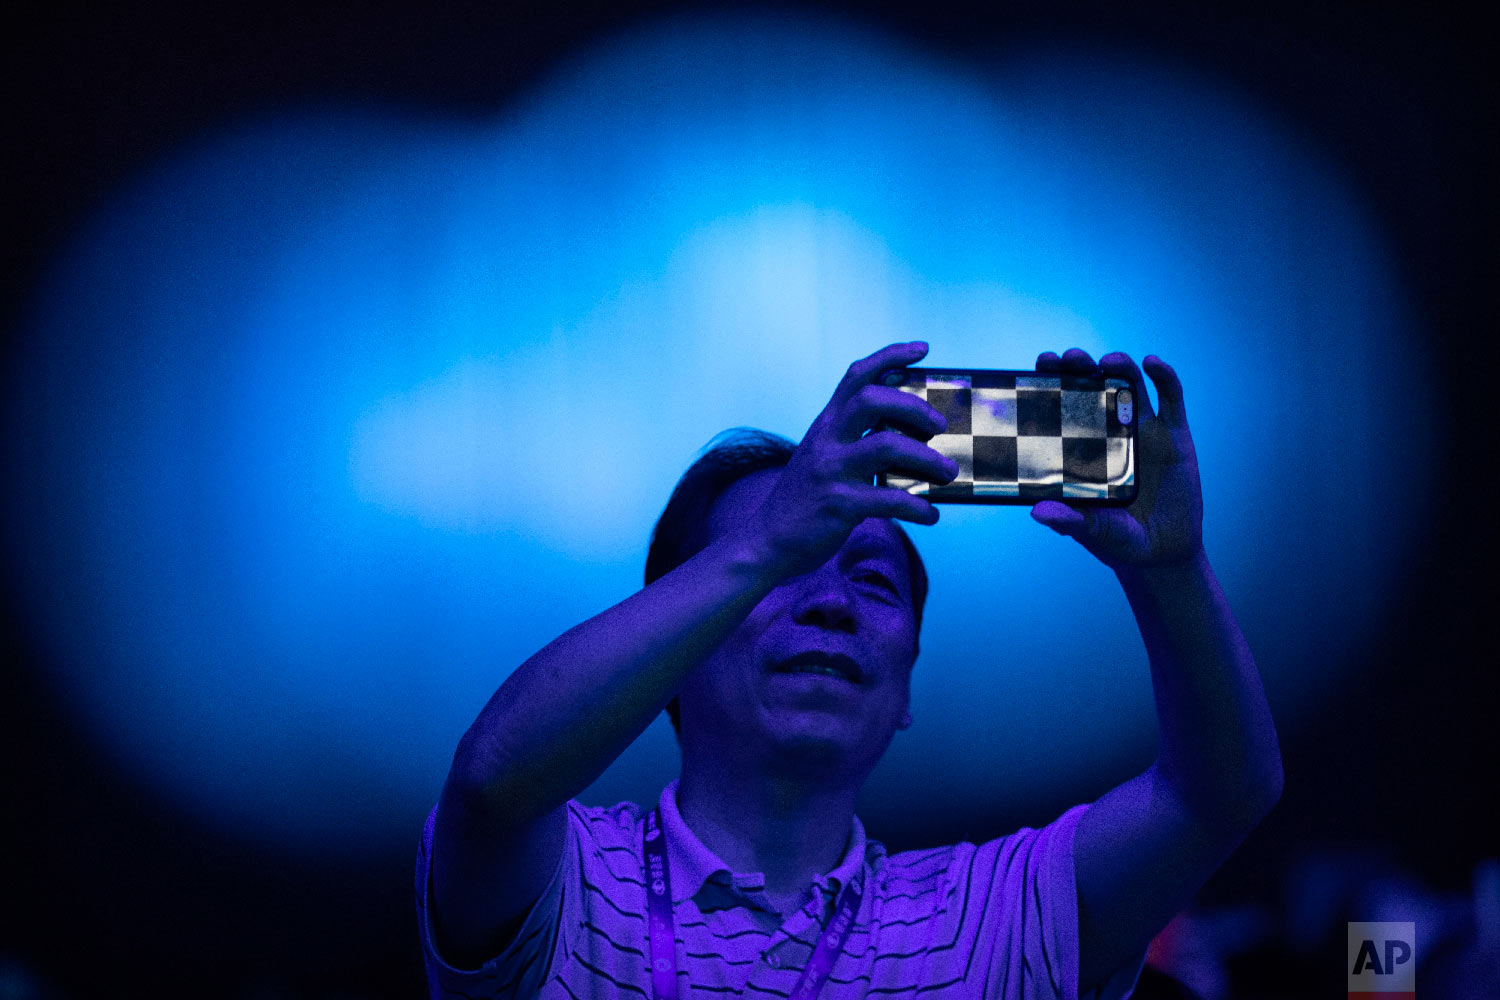 A spectator takes a cellphone photo of the CHAIN Cup at the China National Convention Center in Beijing, Saturday, June 30, 2018. A computer running artificial intelligence software defeated two teams of human doctors in accurately recognizing maladies in magnetic resonance images on Saturday, in a contest that was billed as the world's first competition in neuroimaging between AI and human experts. (AP Photo/Mark Schiefelbein)